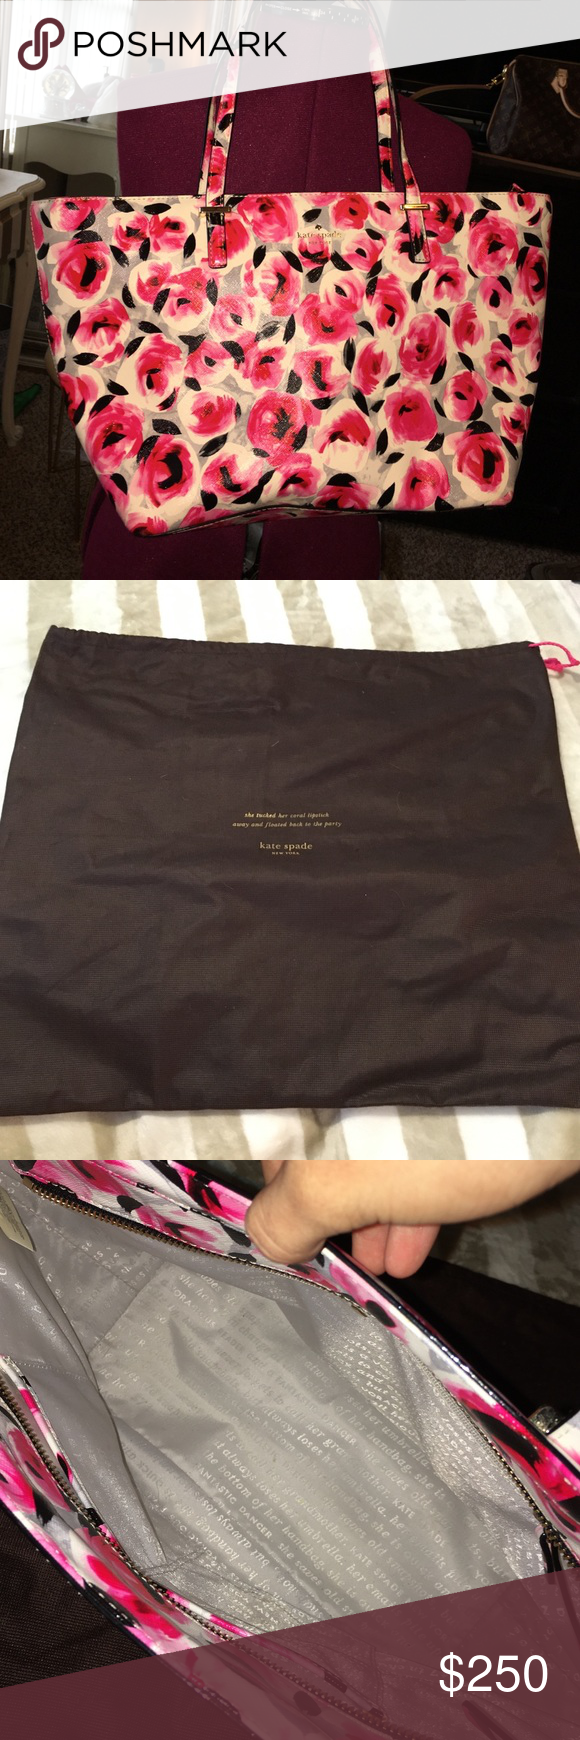 Kate Spade Tote New perfect condition. Bought in January at Nordstroms. Comes with dust bag. Kate Spade Bags Totes